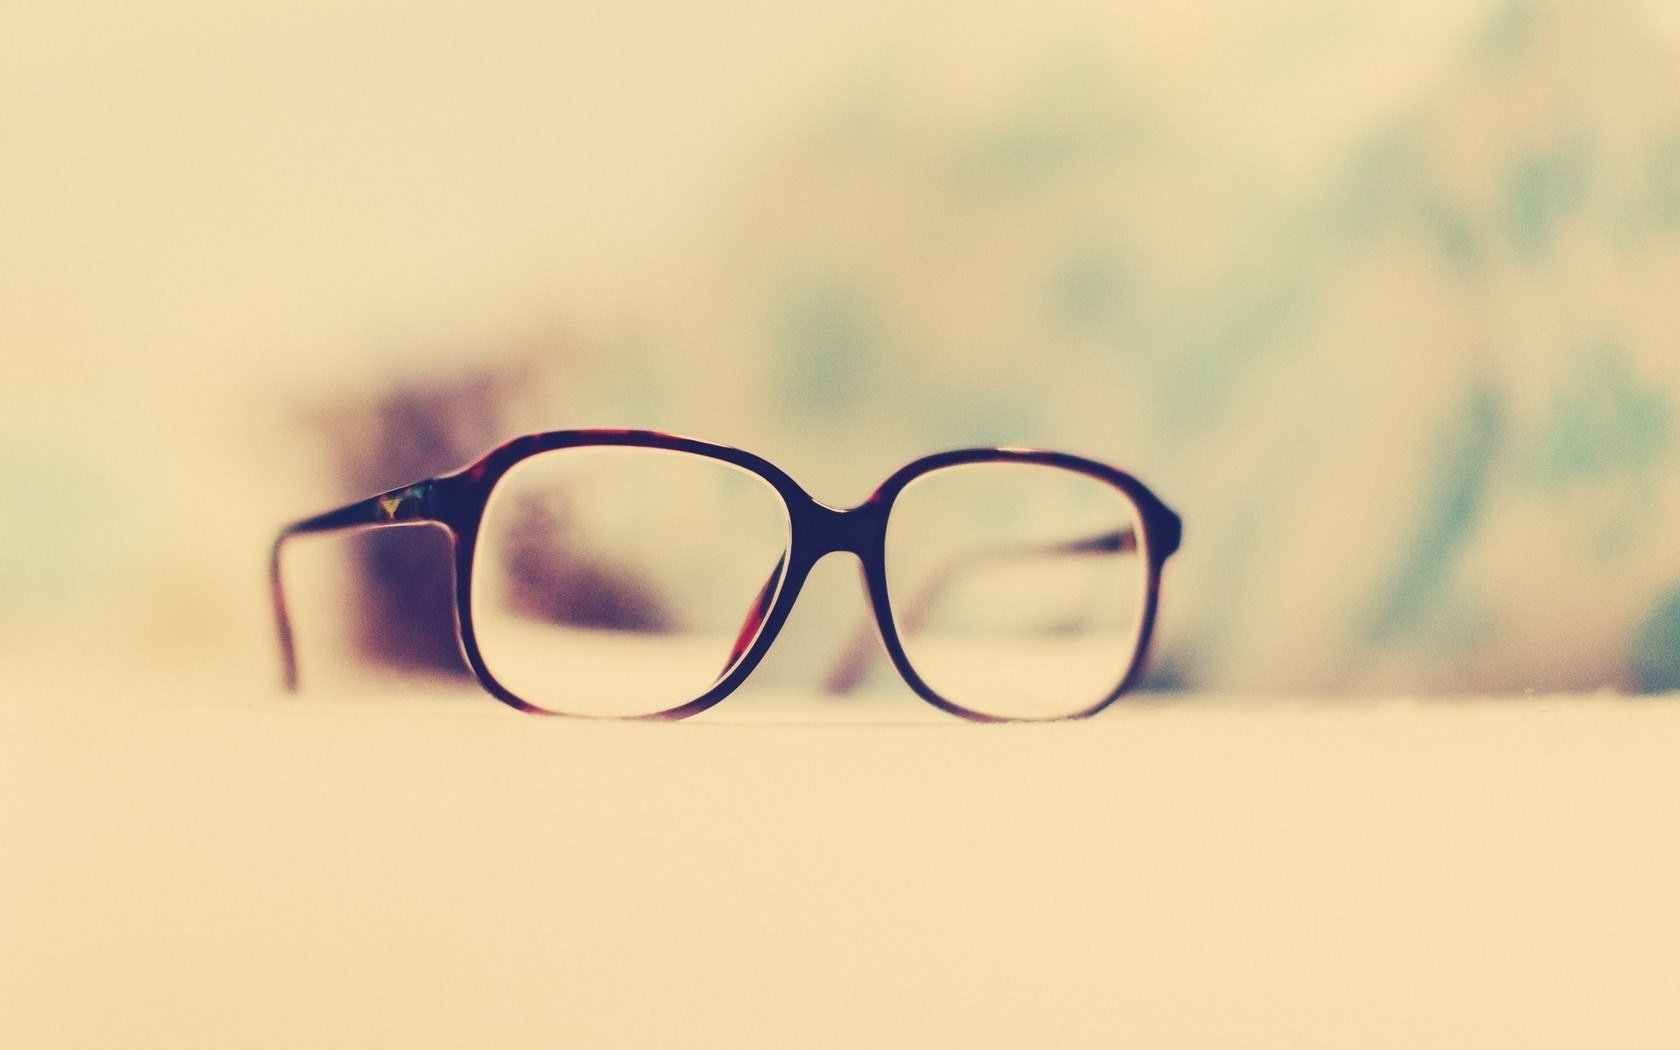 mood-glasses-warm-picture-photo-vintage-hd-wallpaper